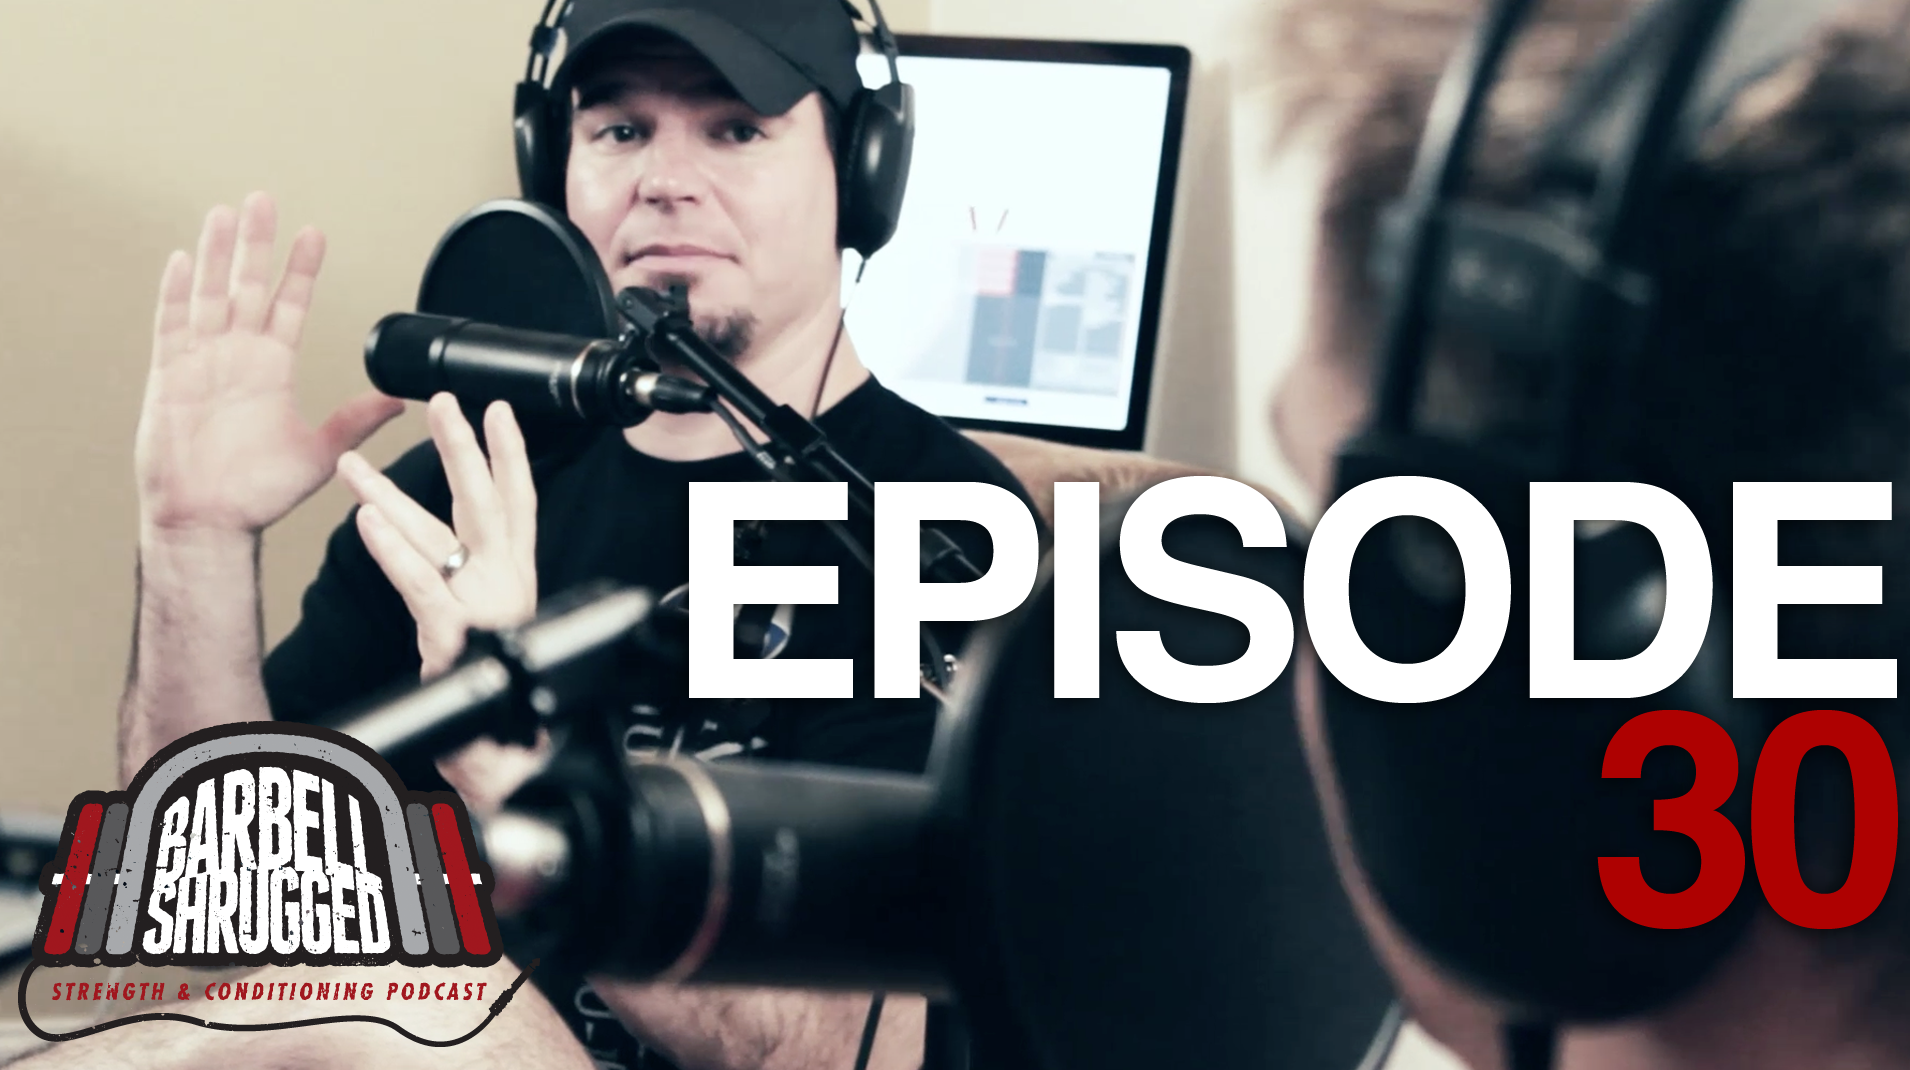 Episode 30 - Shoulder and Back Sport Injuries, MMA, and Olympic Weightlifting